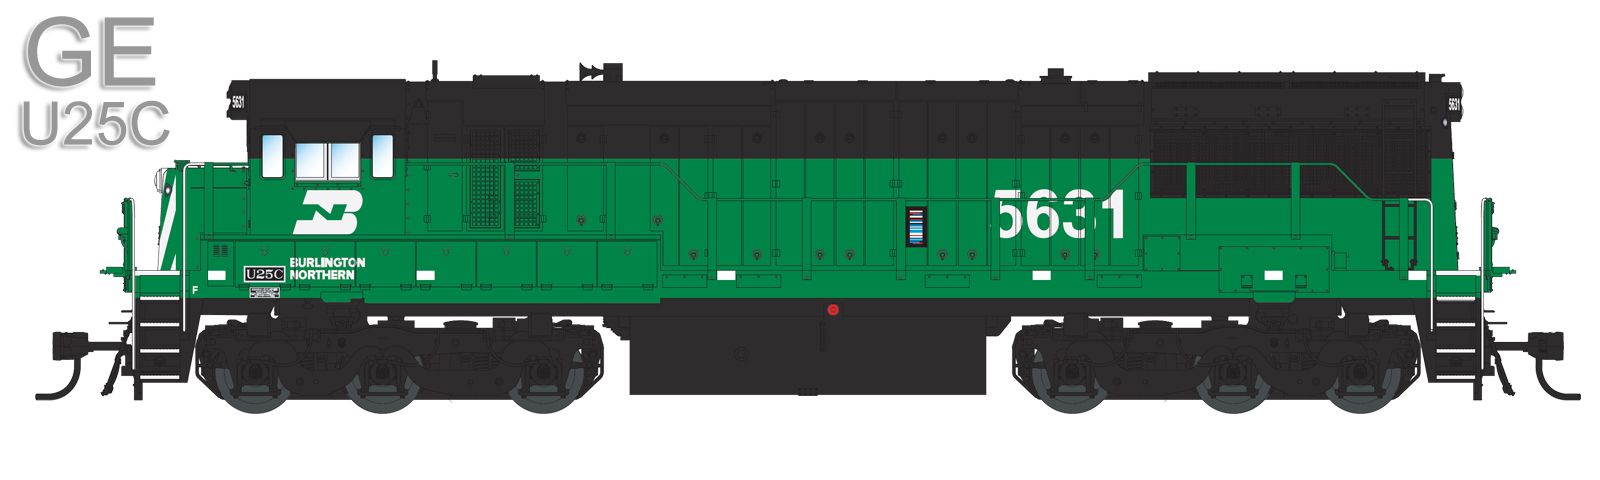 Burlington Northern (Coming Soon): 5631, 5635, and 5640